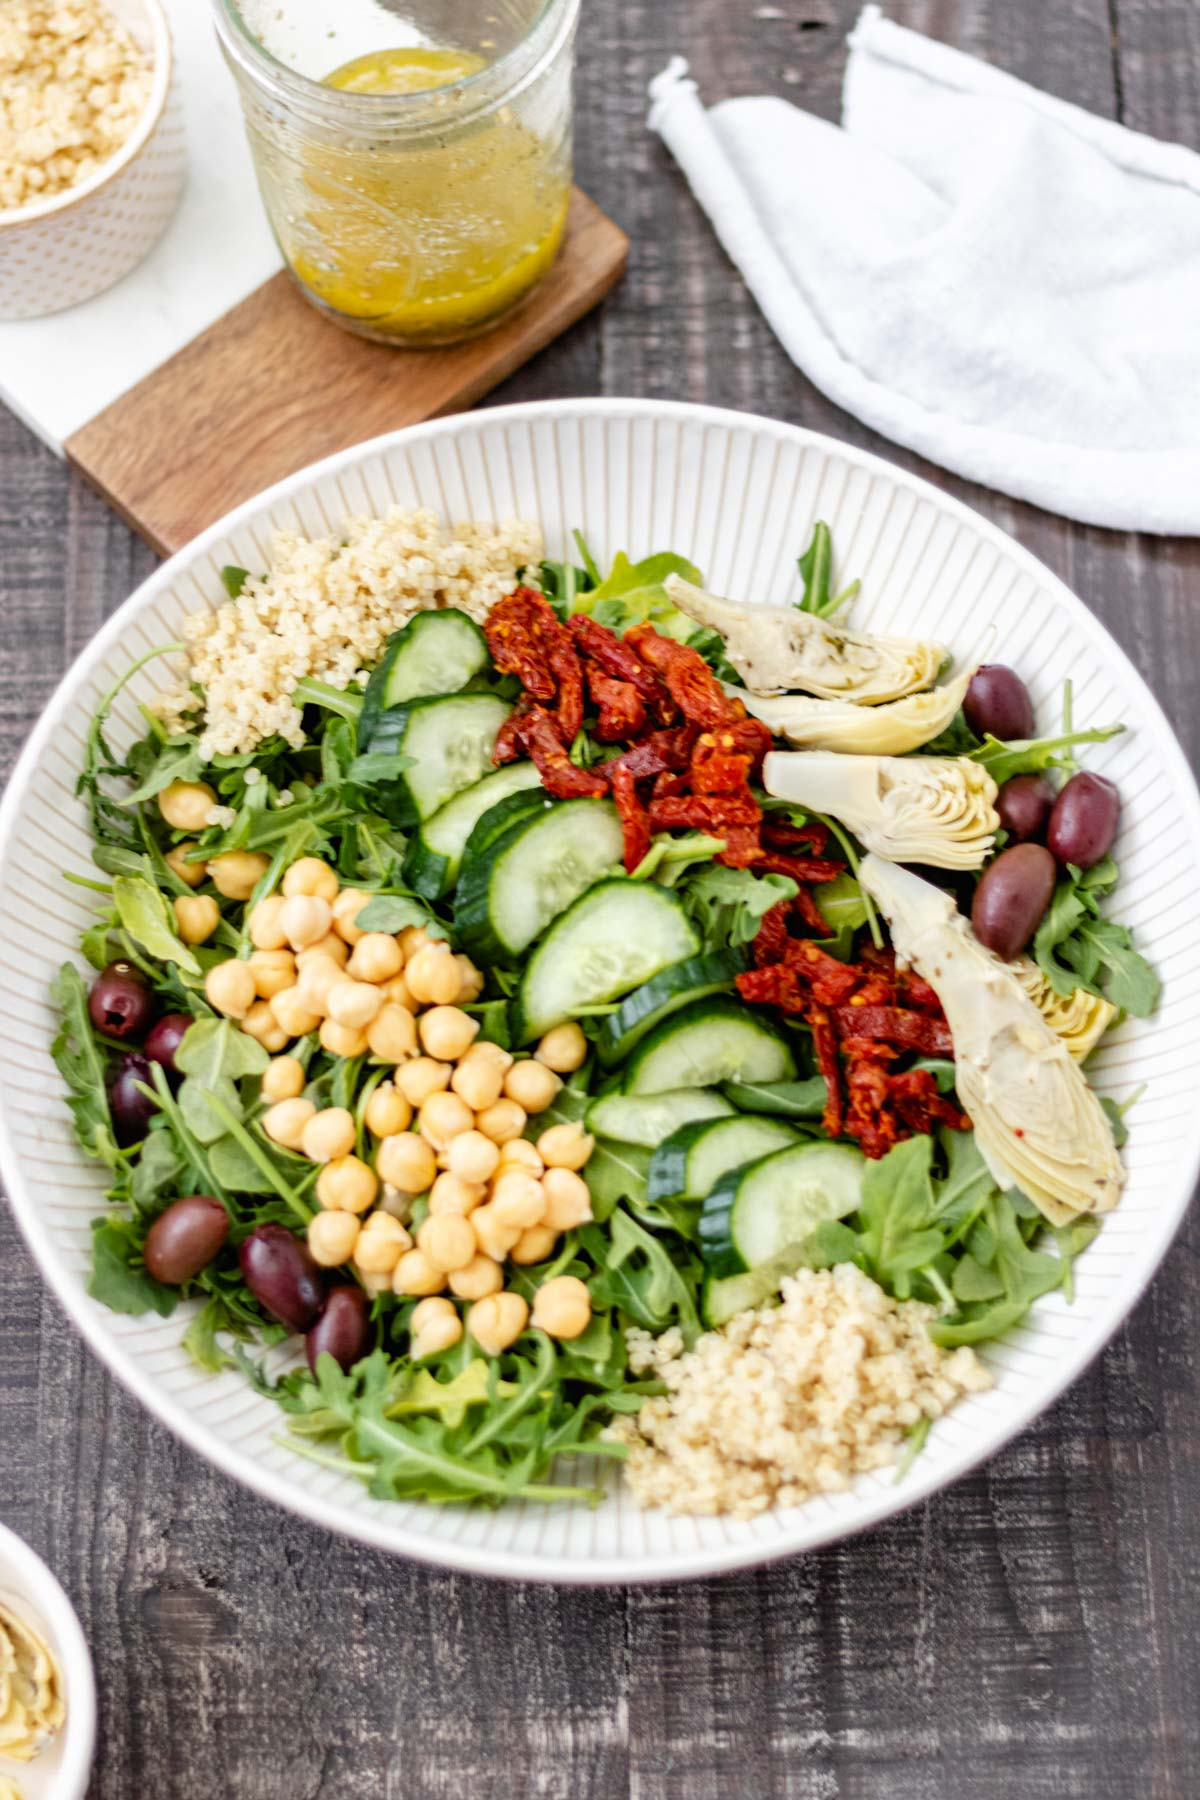 Mediterranean salad ingredients, like artichoke hearts, Kalamata olives, sundried tomatoes and arugula in a large serving bowl that is surrounded by other ingredients in glass jars.